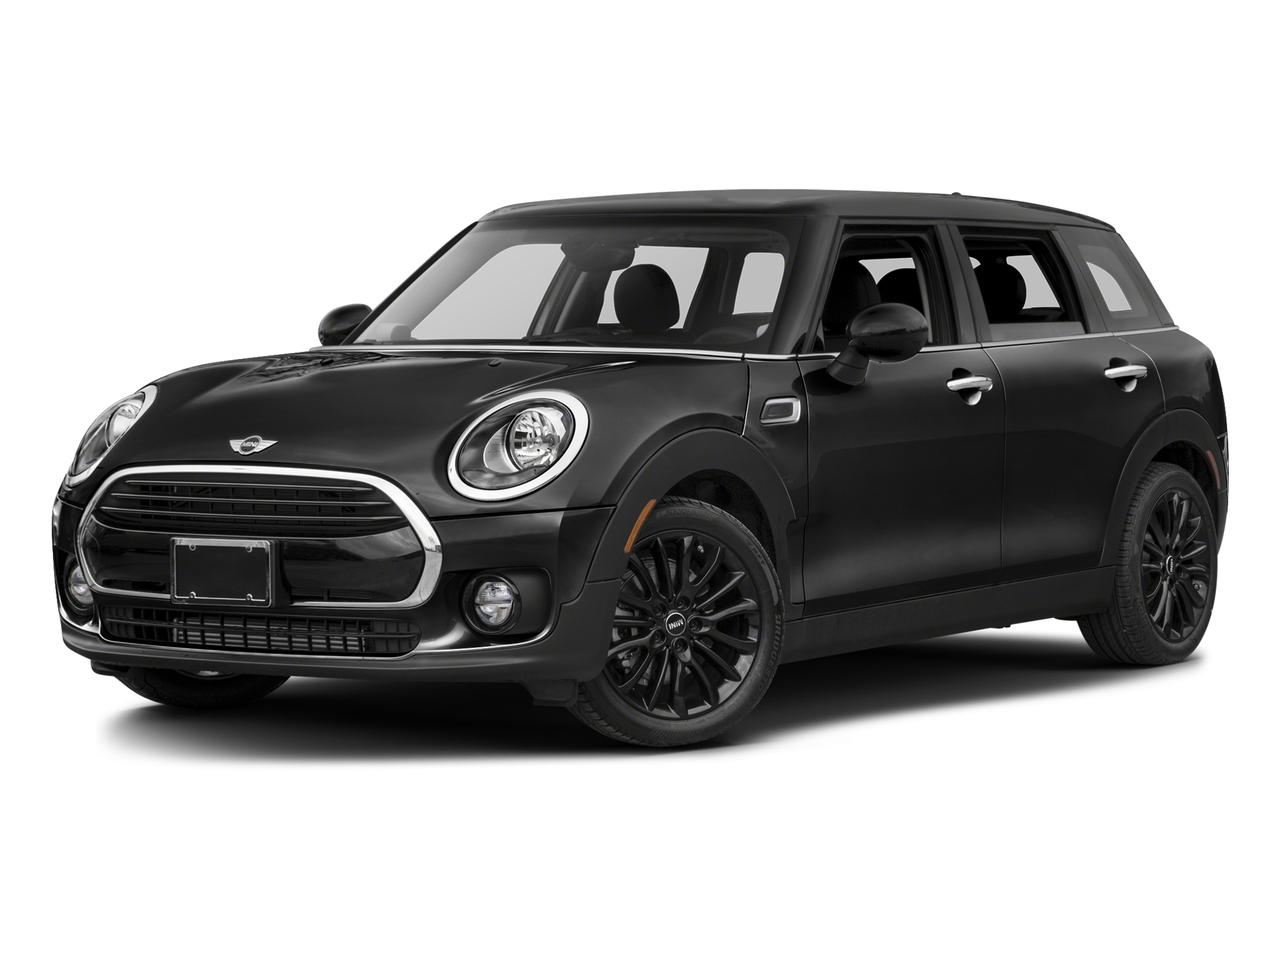 2017 MINI Cooper Clubman Vehicle Photo in Anaheim, CA 92806